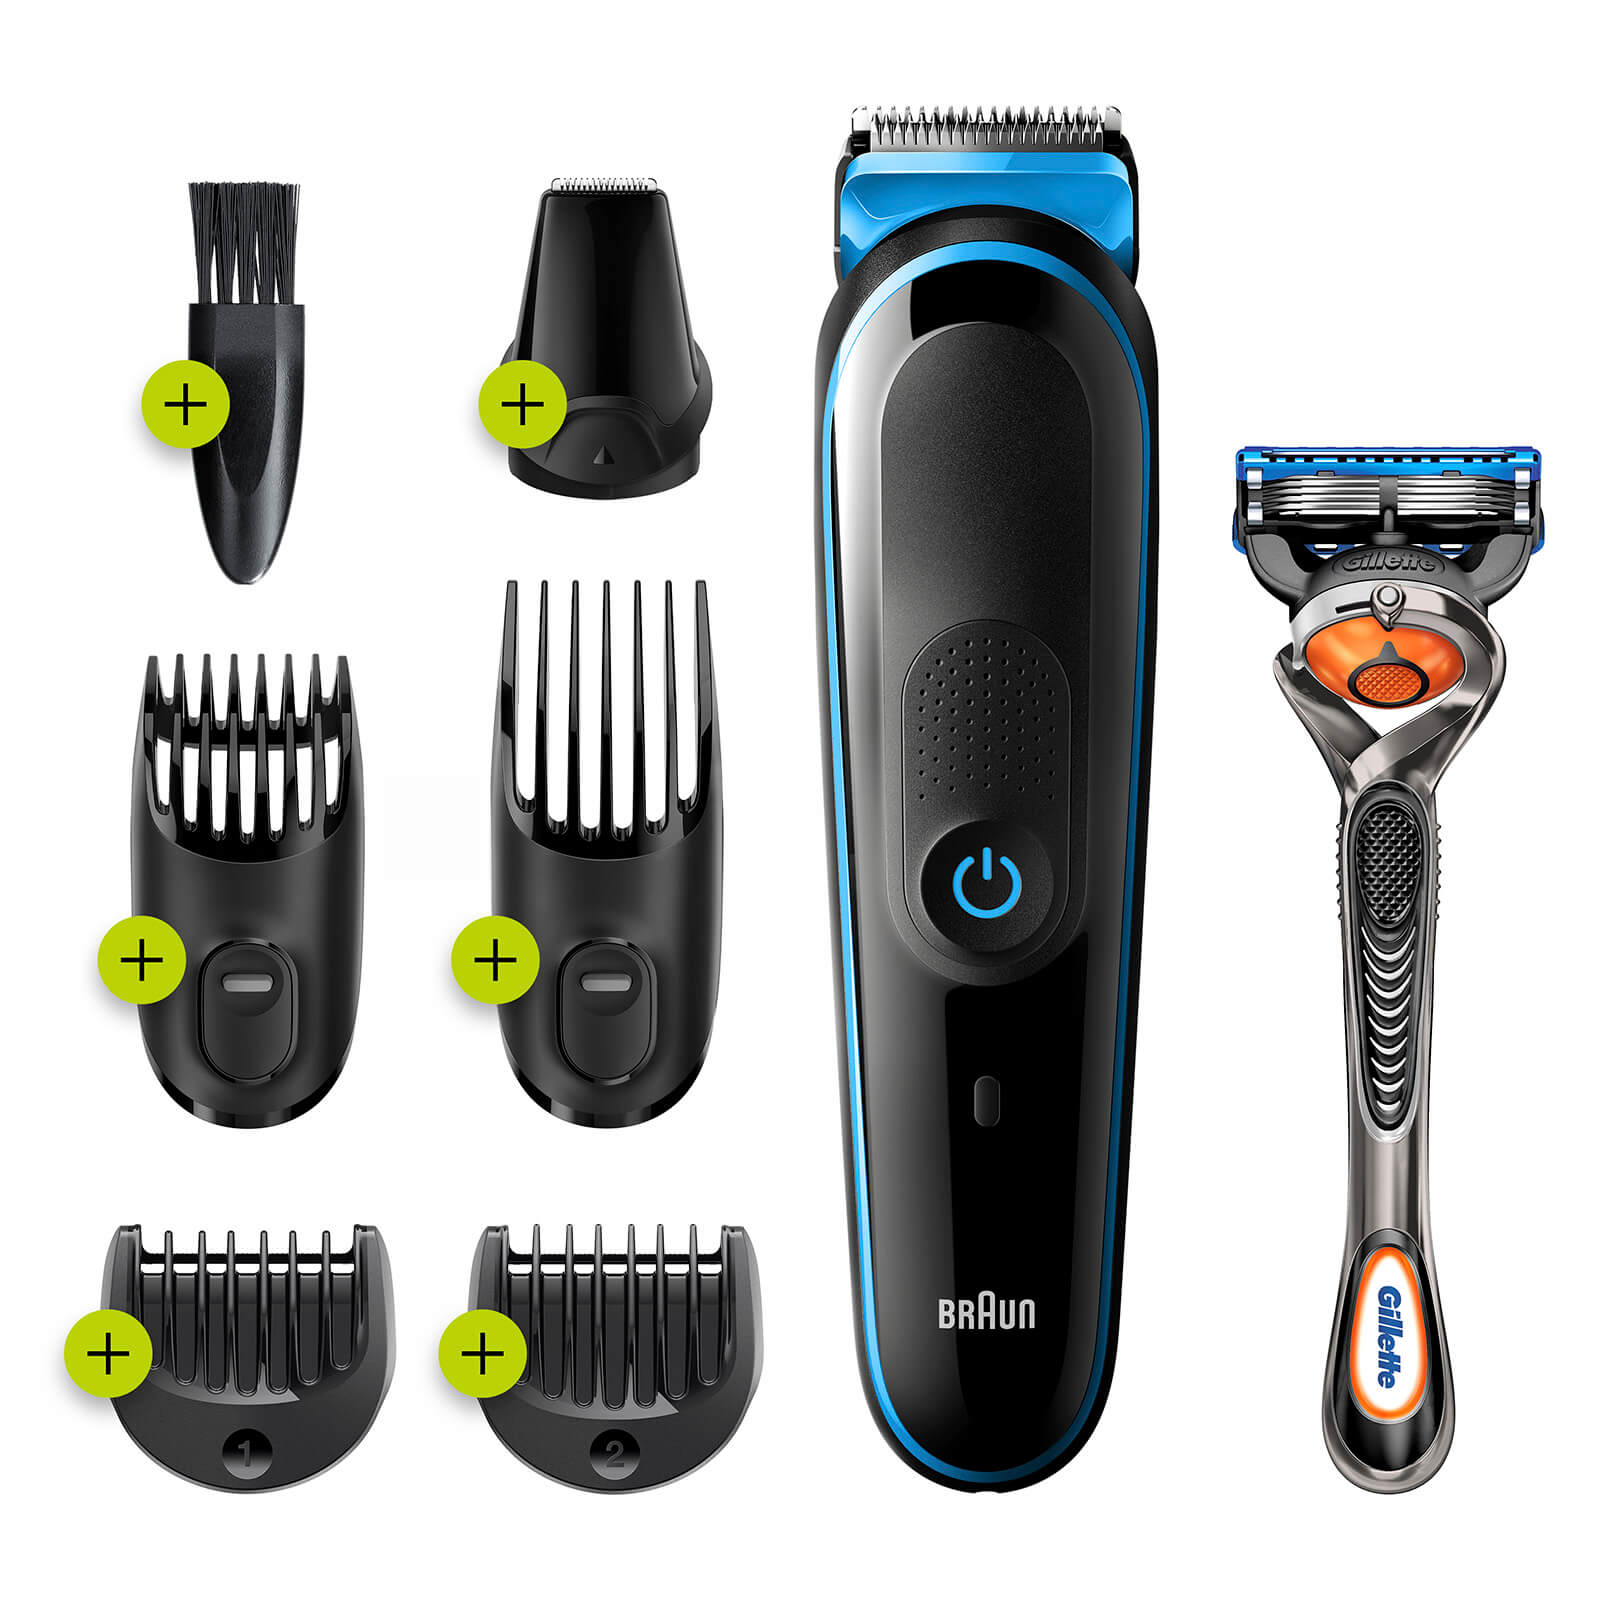 All-in-one Trimmer with 5 attachments and Gillette Razor